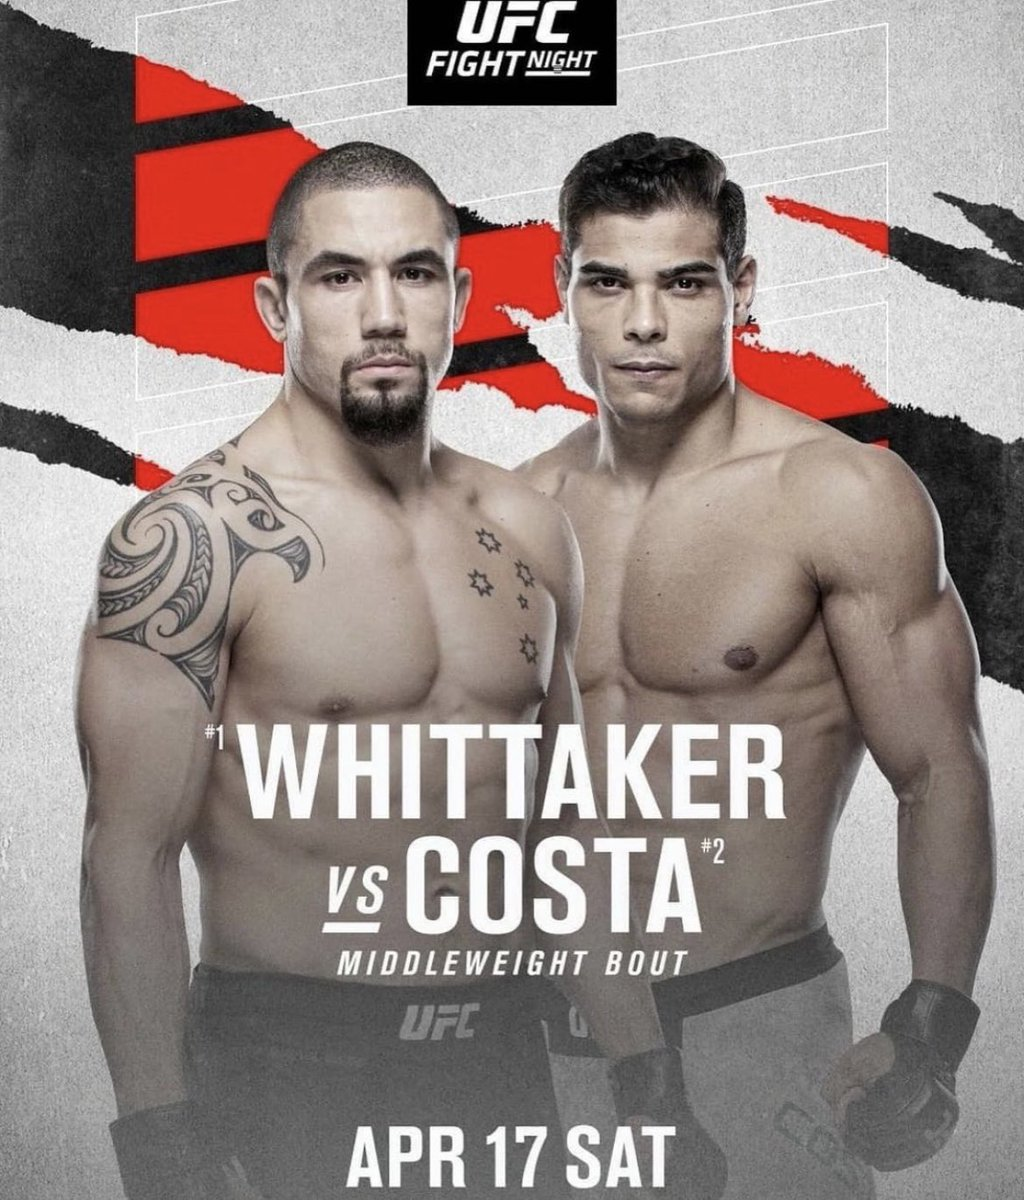 Replying to @LGS_MMA: Banger alert. Whittaker vs Costa. How do you seeing this one playing out?